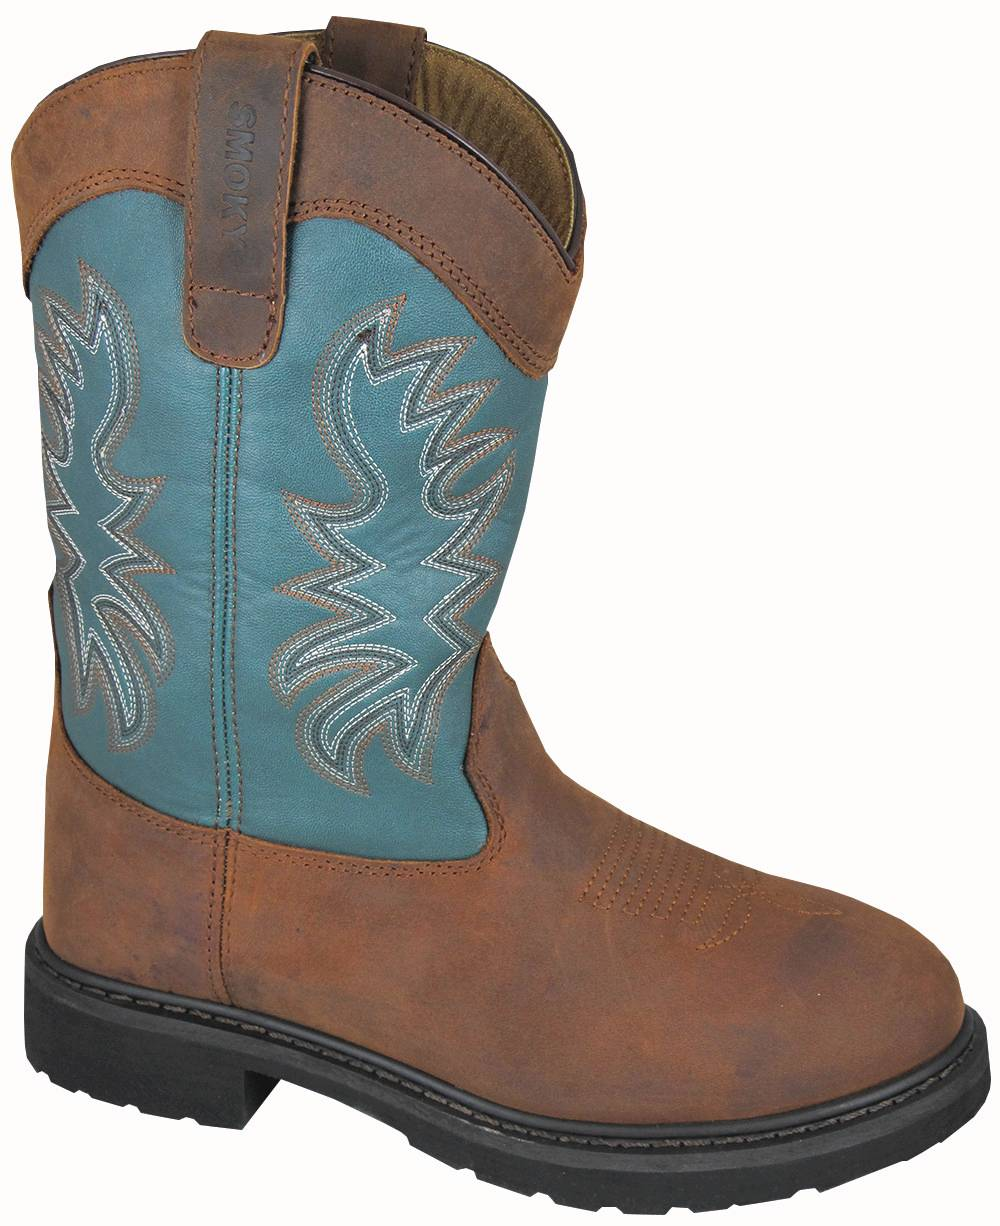 Smoky Mountain Men's Grady Boots